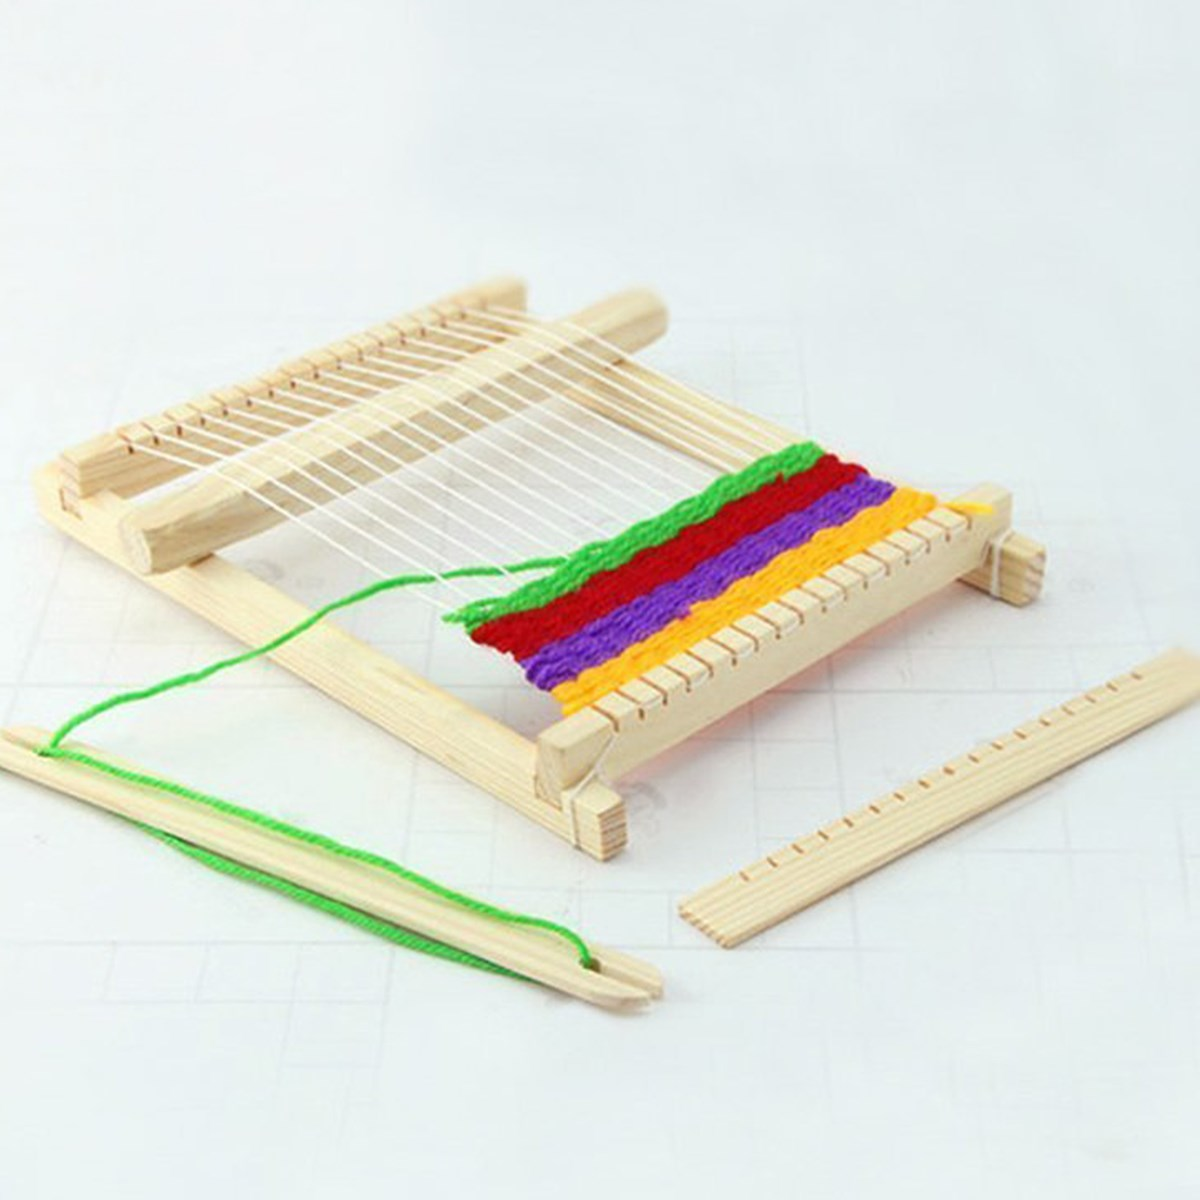 New Traditional Wooden Weaving Toy Loom with Accessories ...